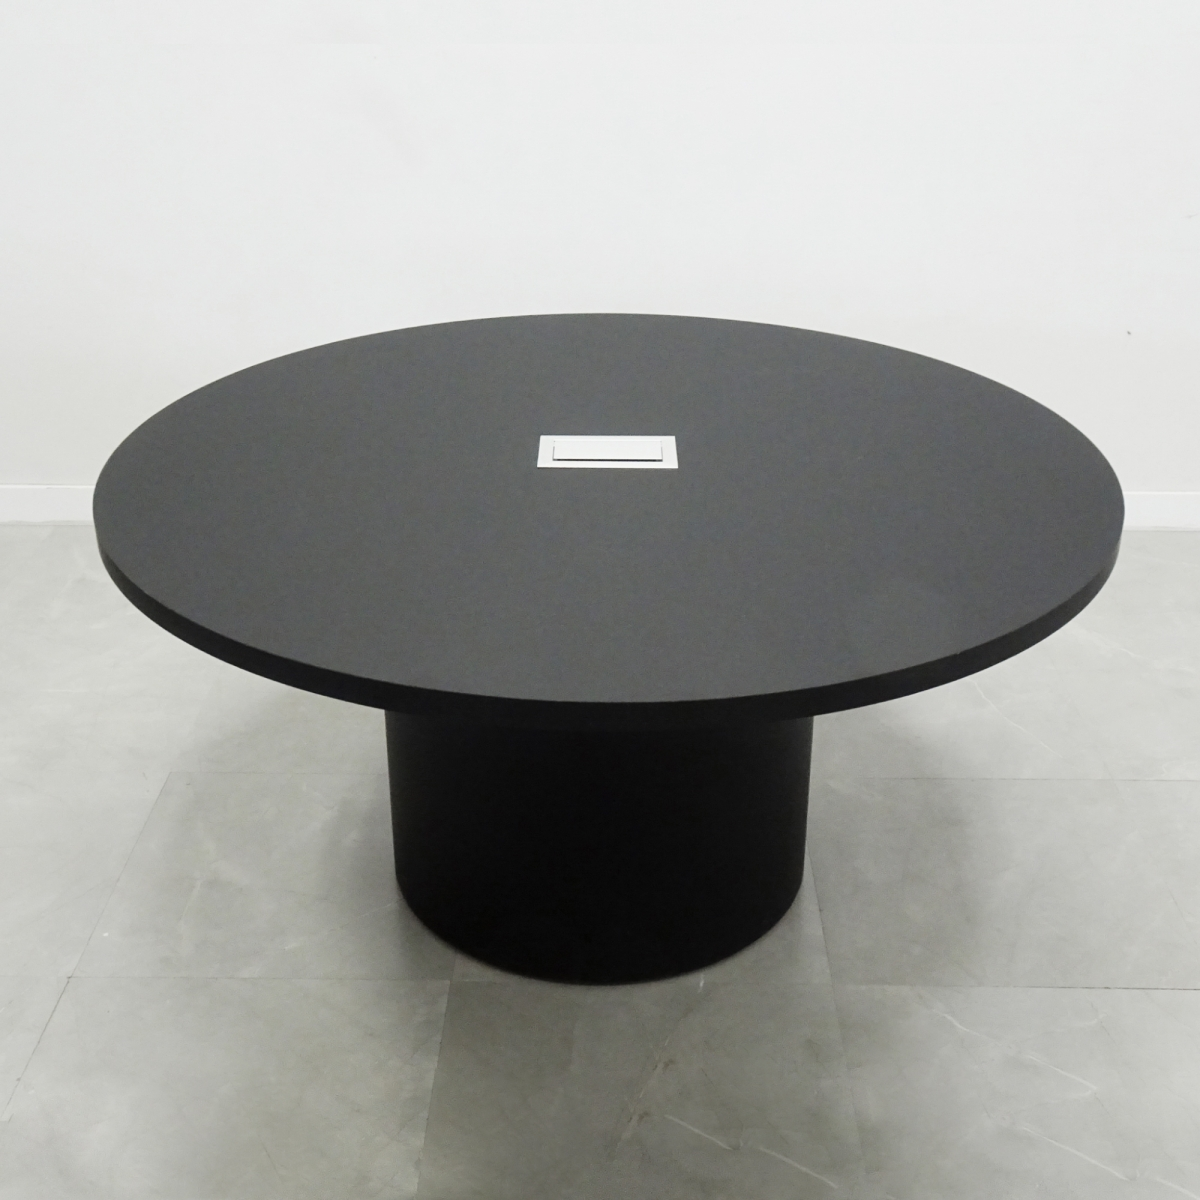 Axis Round Laminate Meeting Table